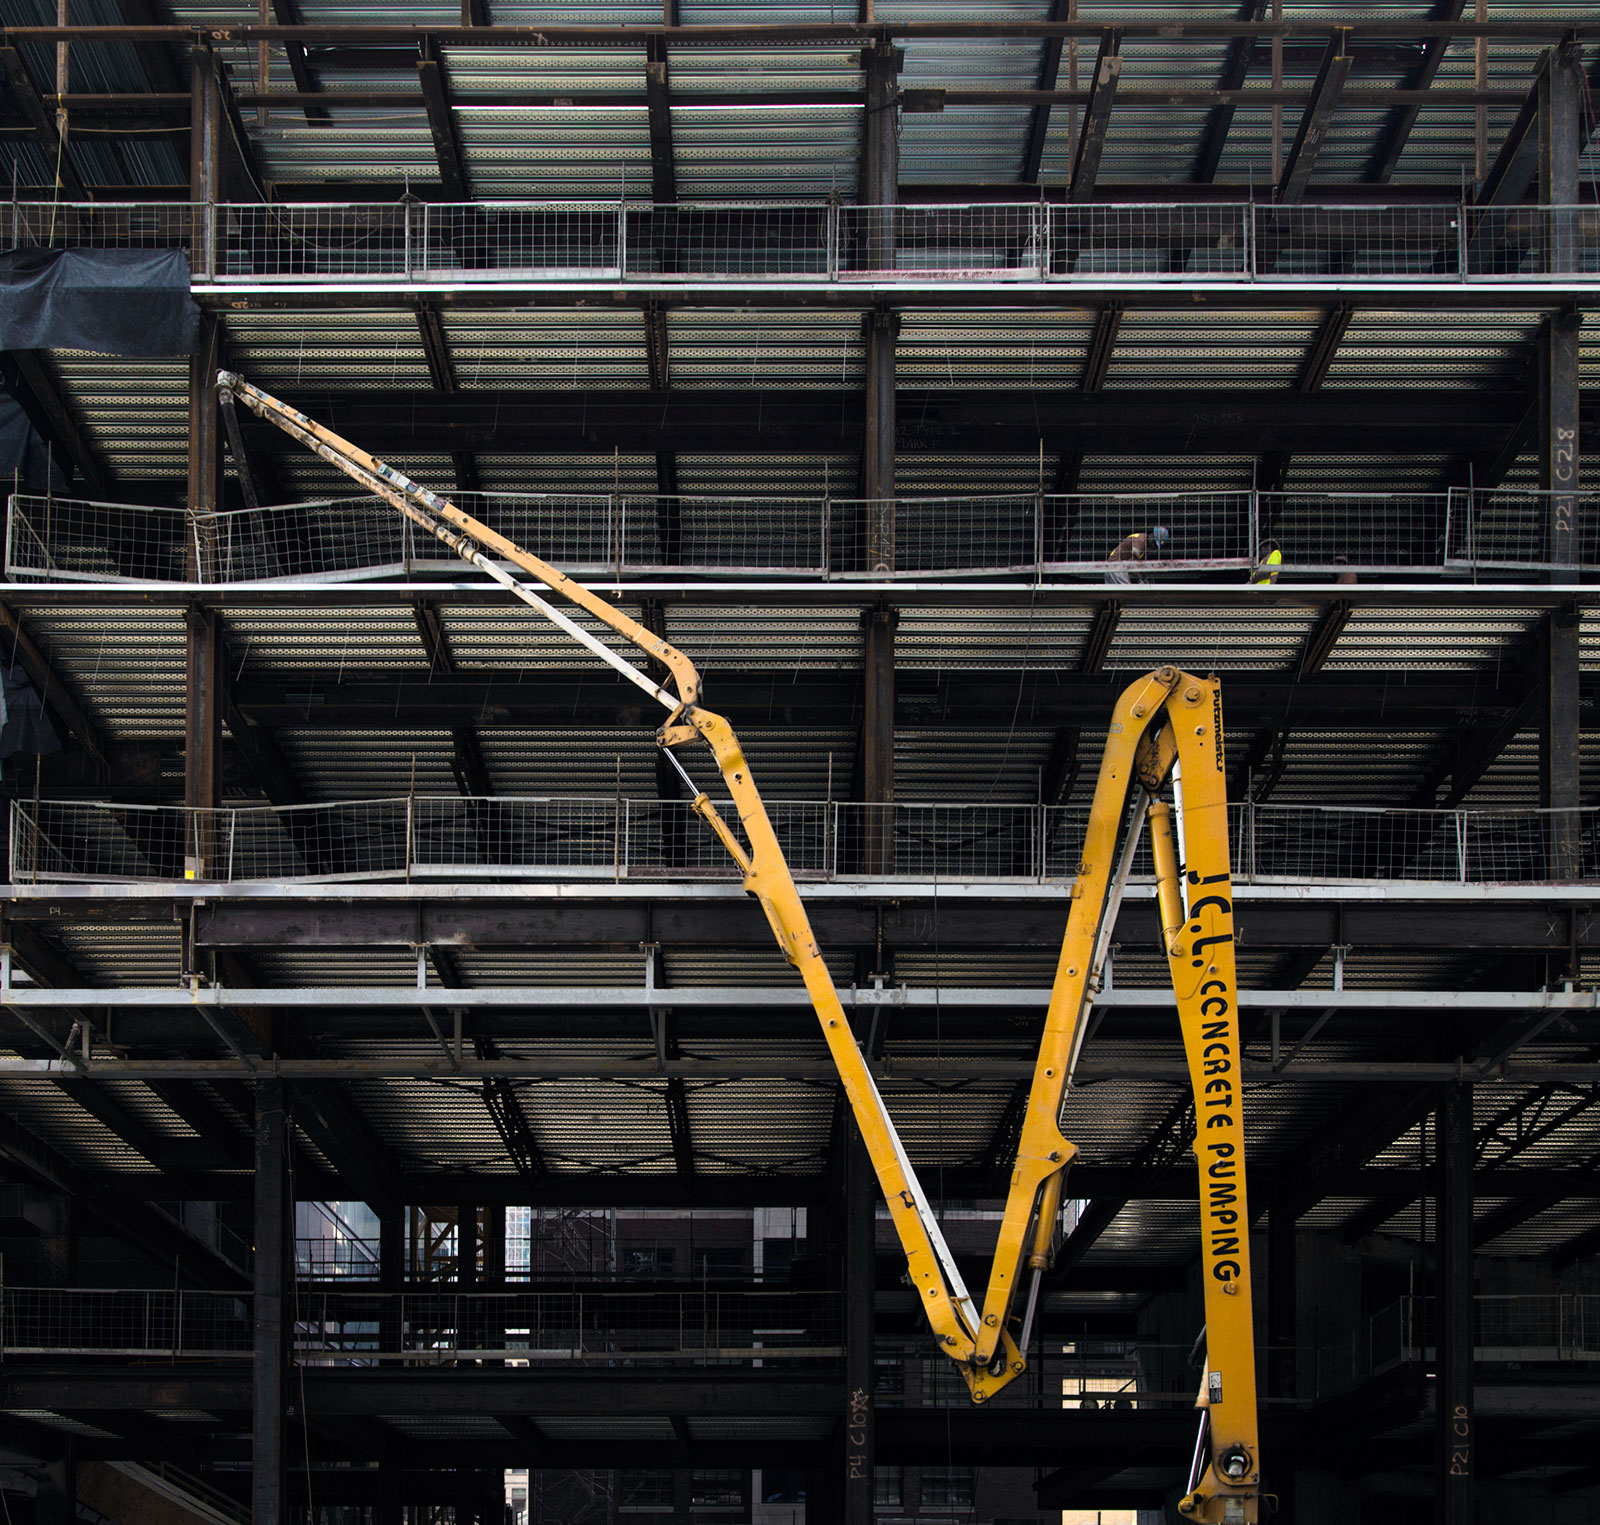 20140801. The Canadarm of concrete pumping stands out Toronto's